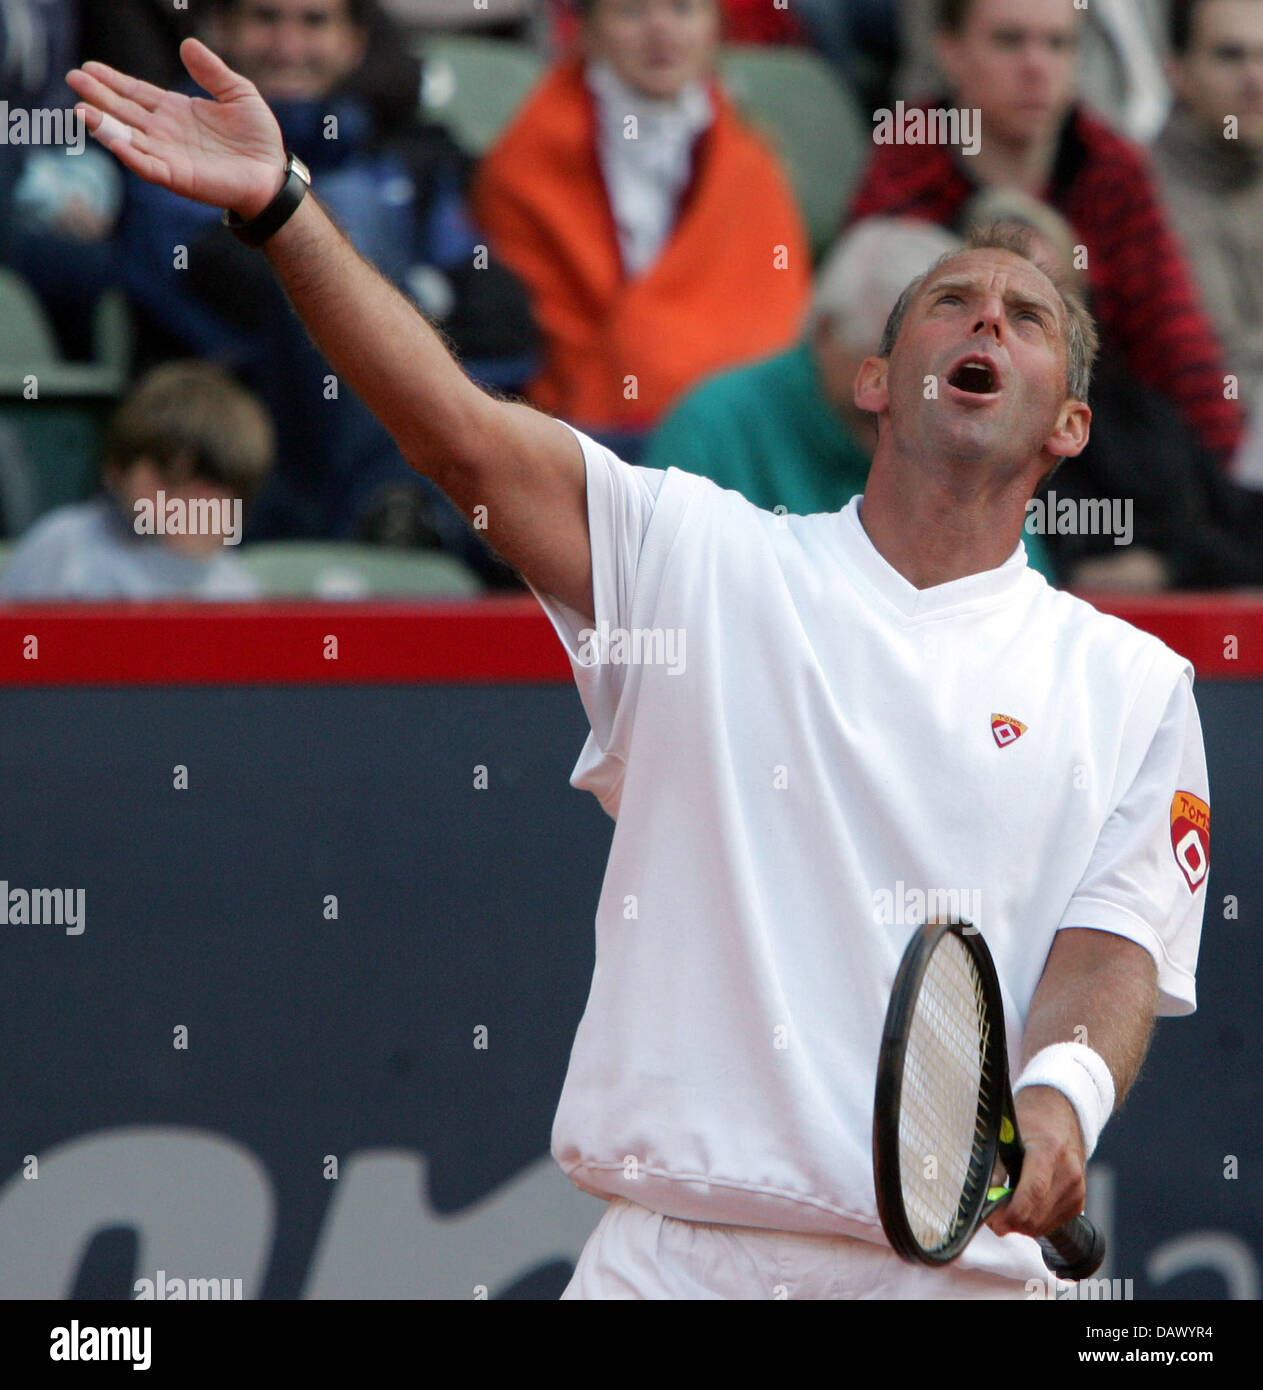 Former Austrian tennis pro Thomas Muster gestures during his match